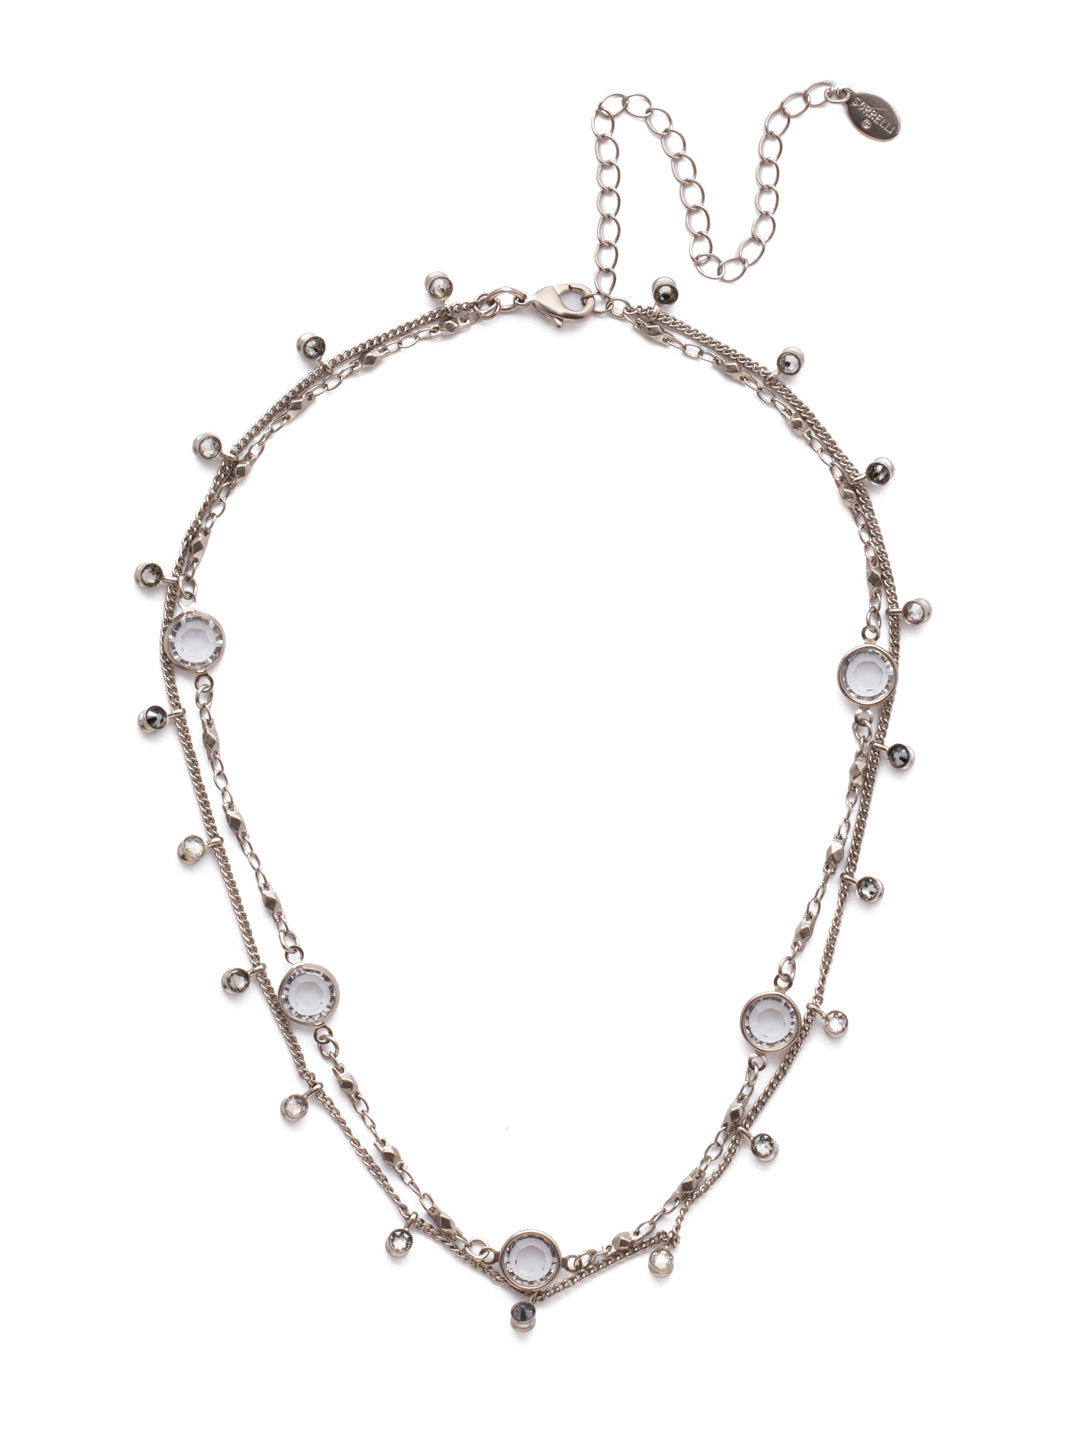 Dewdrop Layered Necklace - NEK36ASCRO